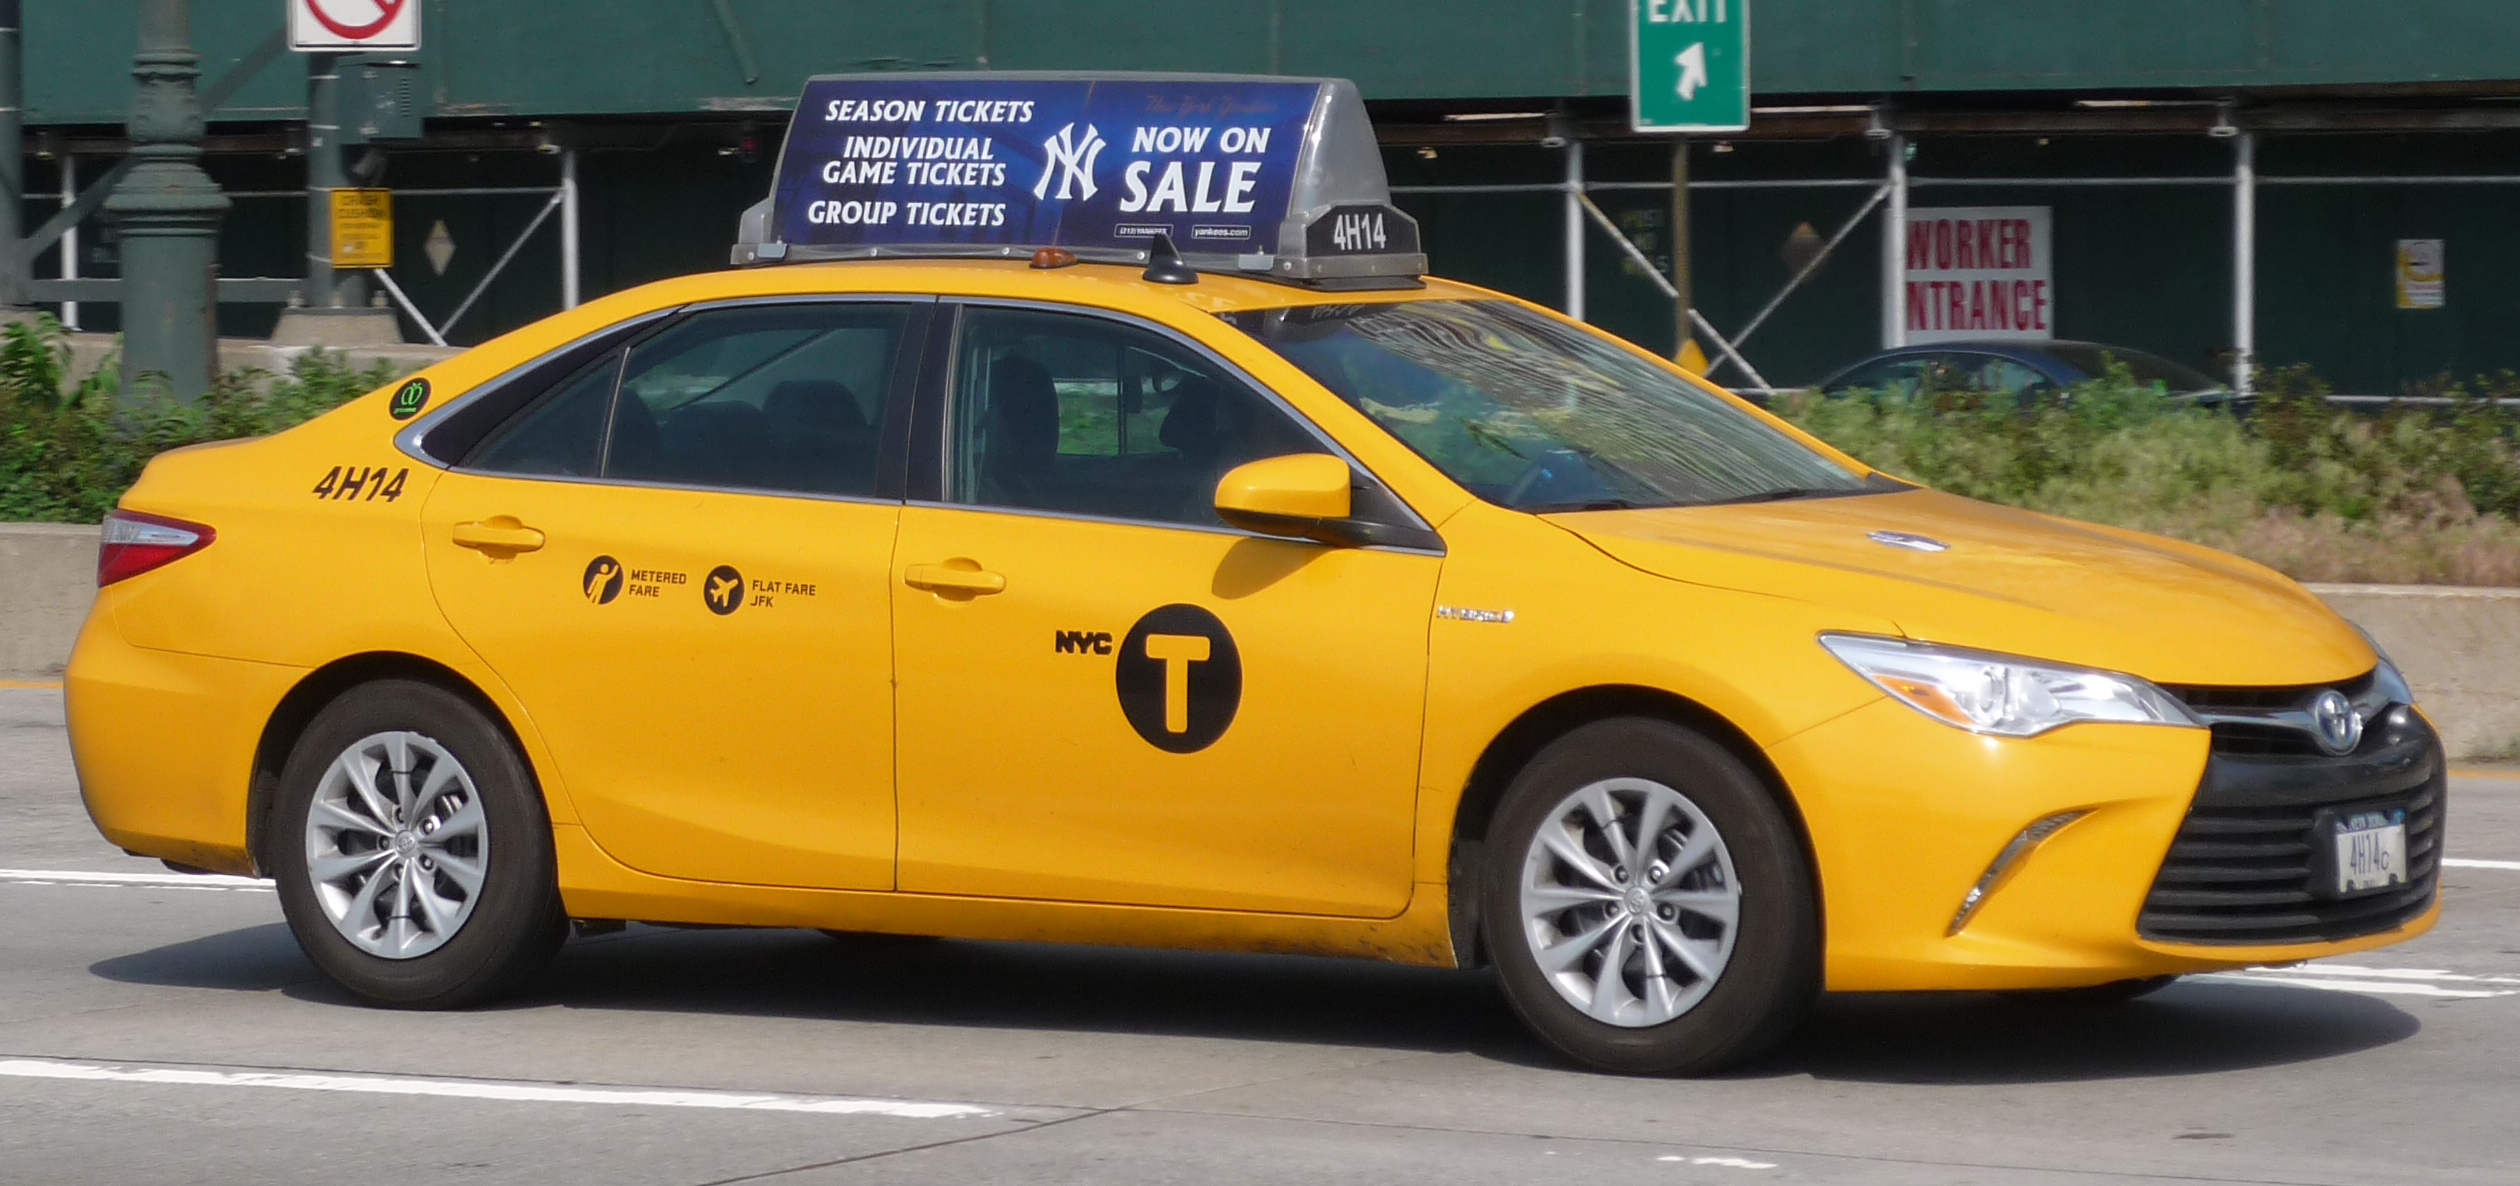 NYC Taxi Surge Pricing